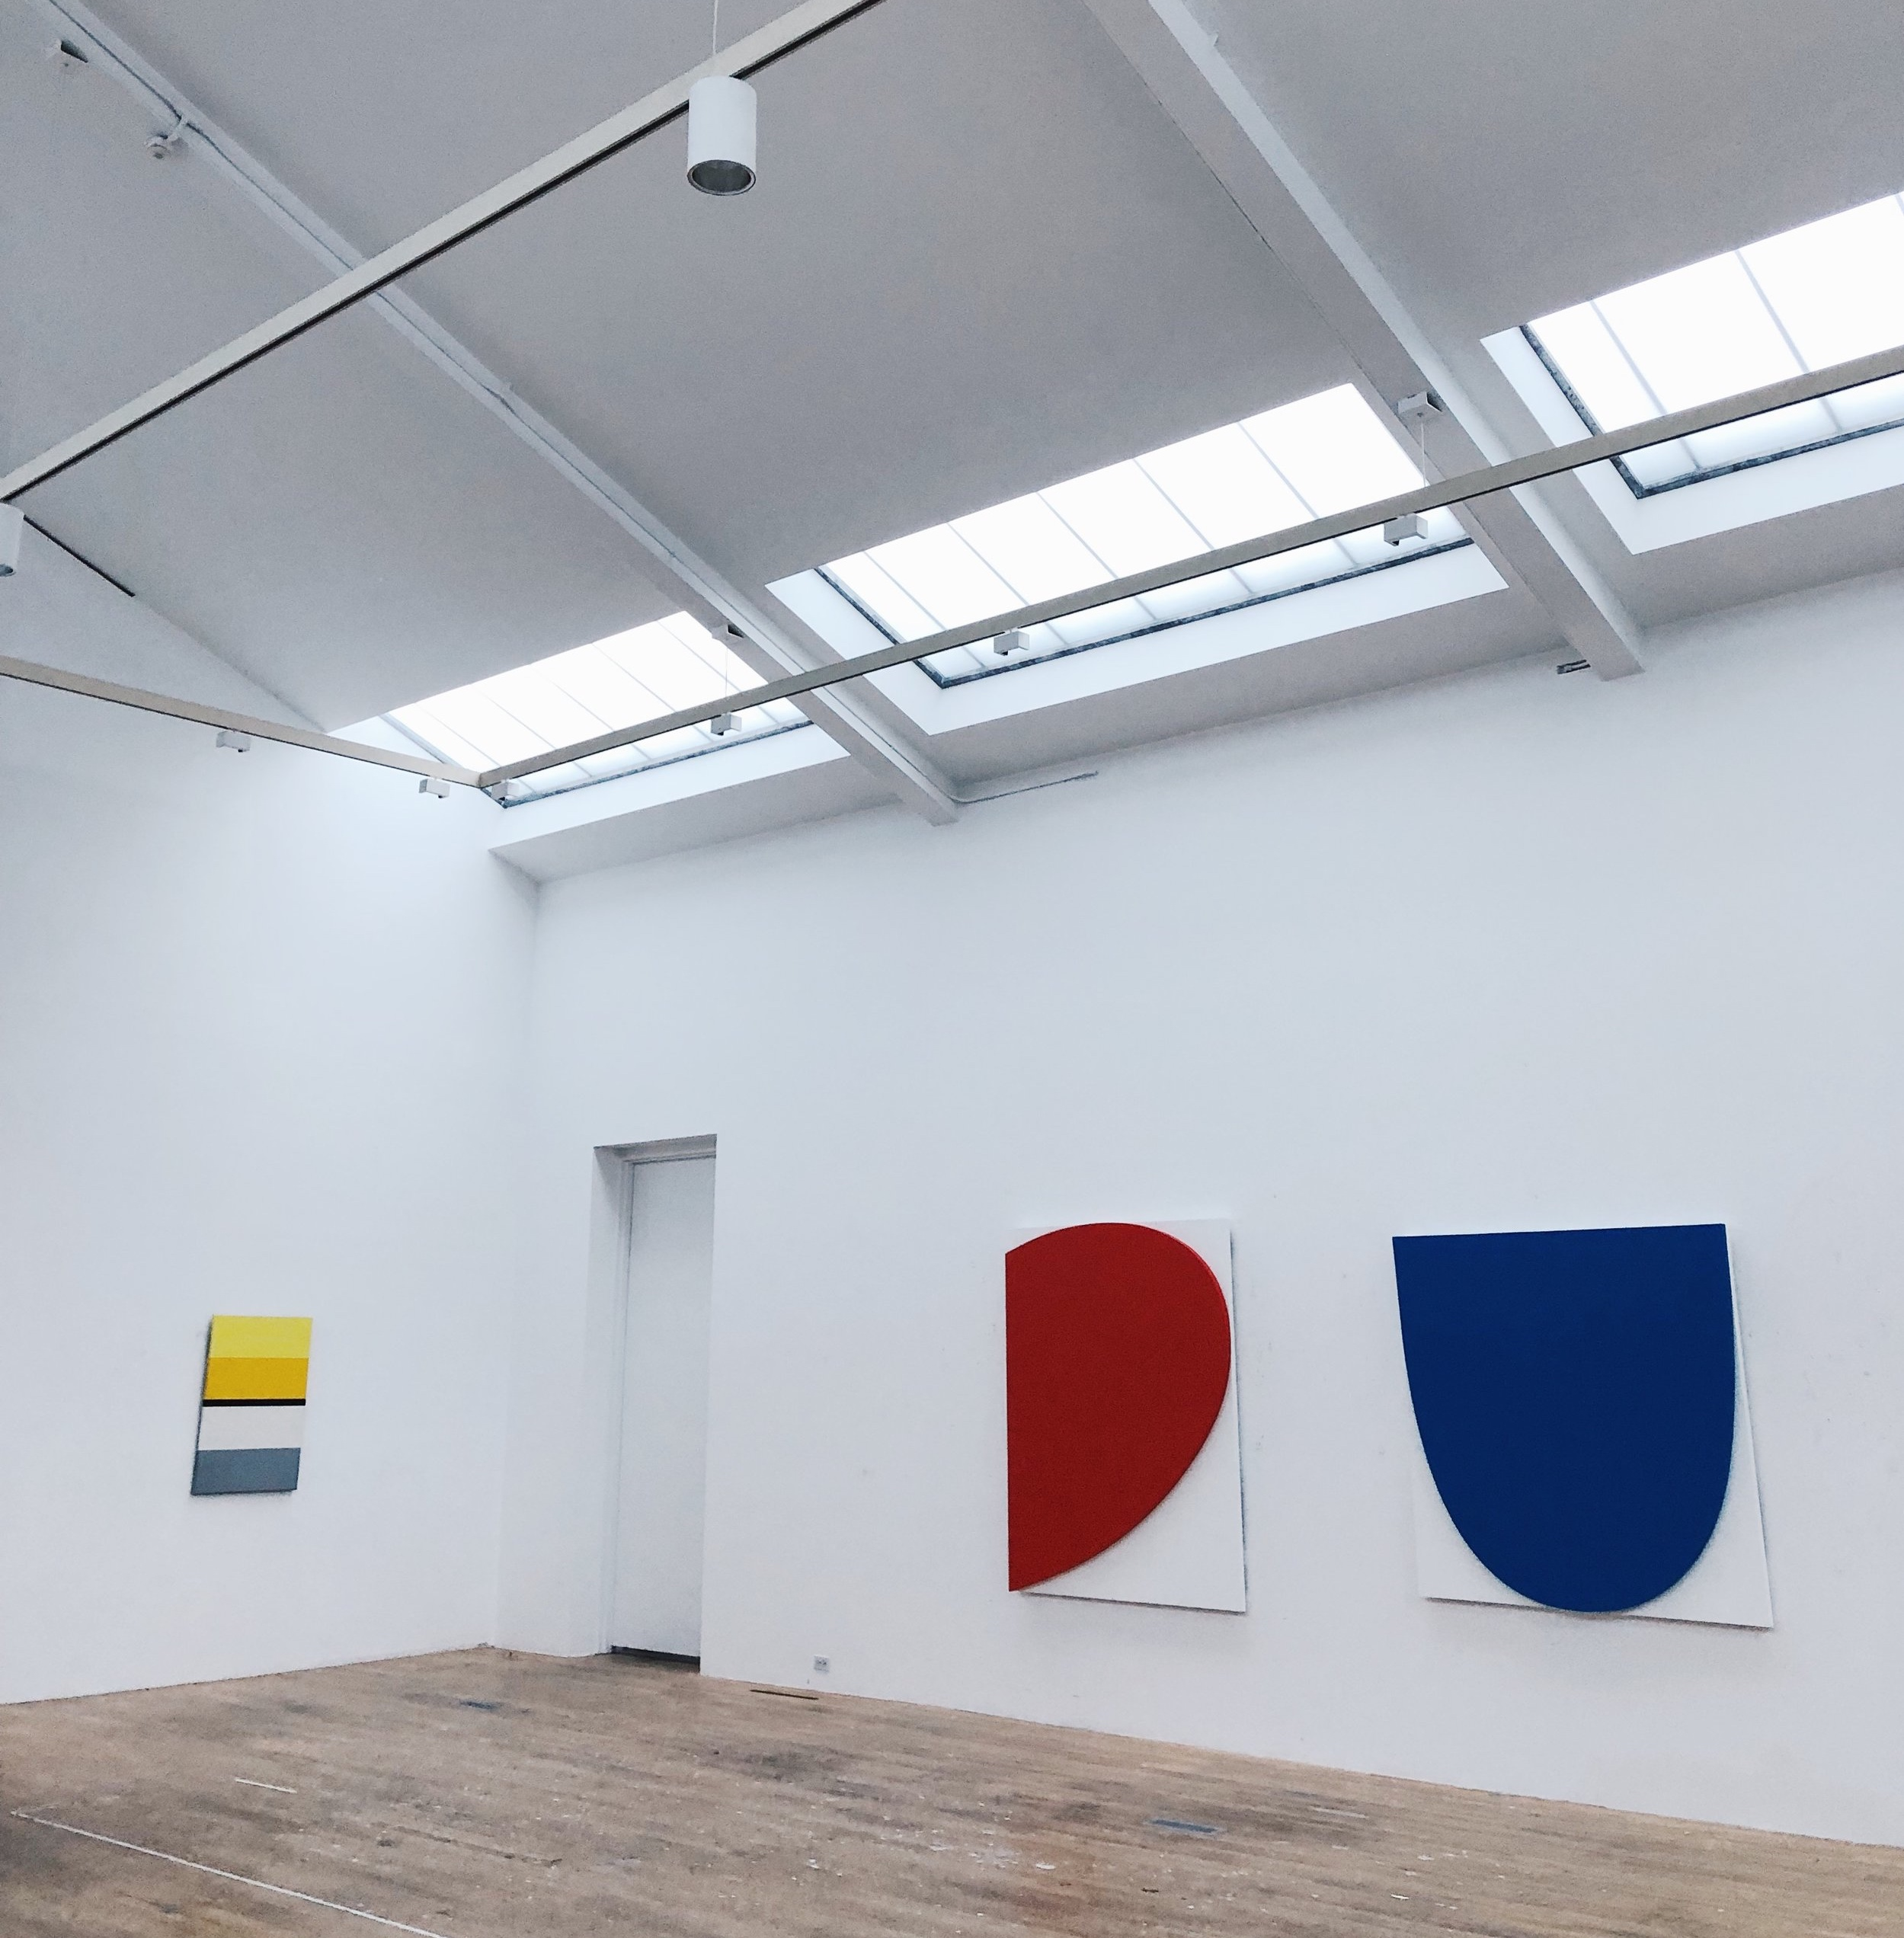 Ellsworth Kelly's  Curves on White  paintings in the studio